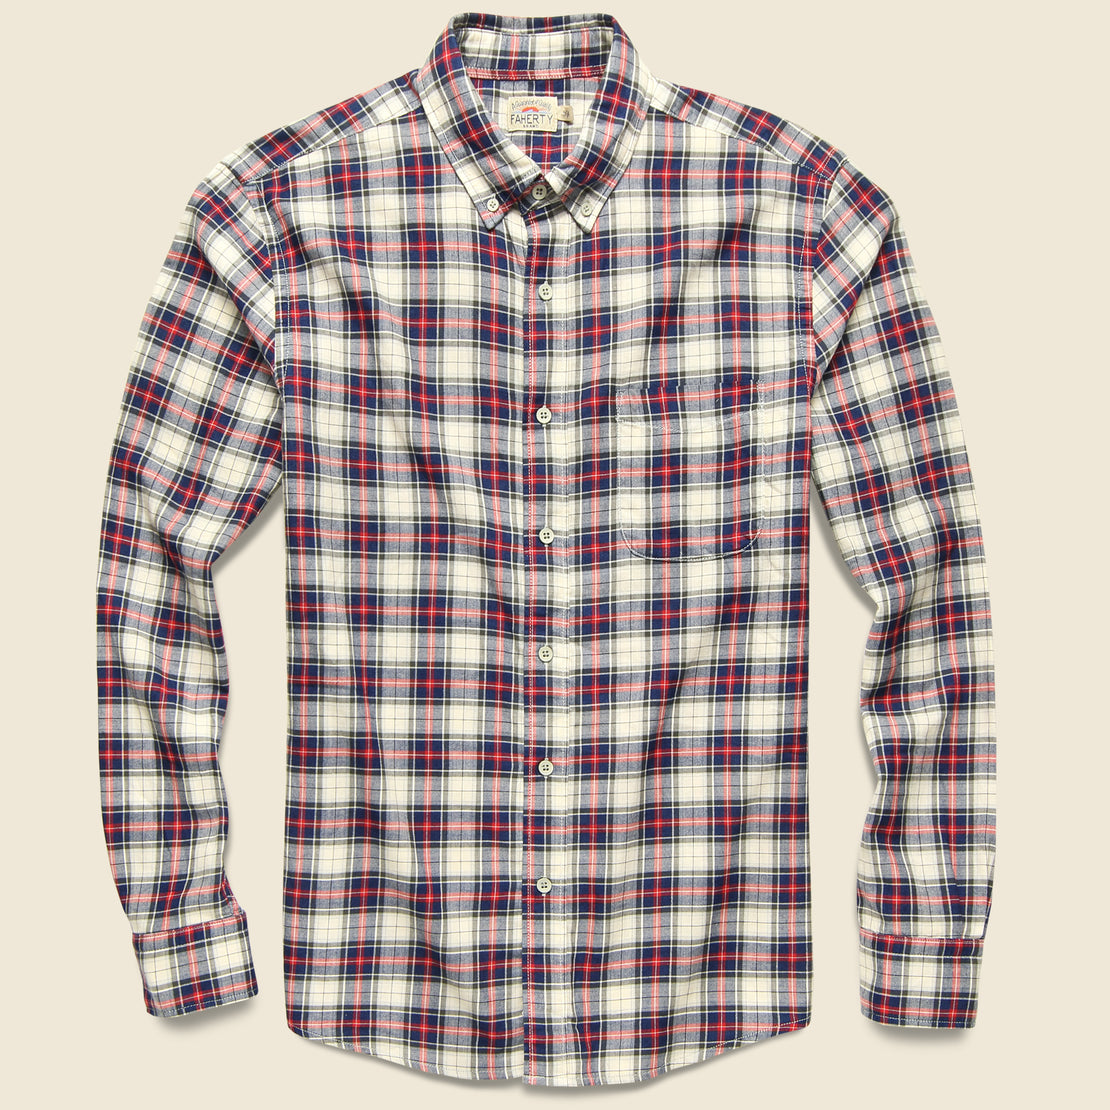 Faherty Brushed Everyday Shirt - Indigo Heritage Tartan